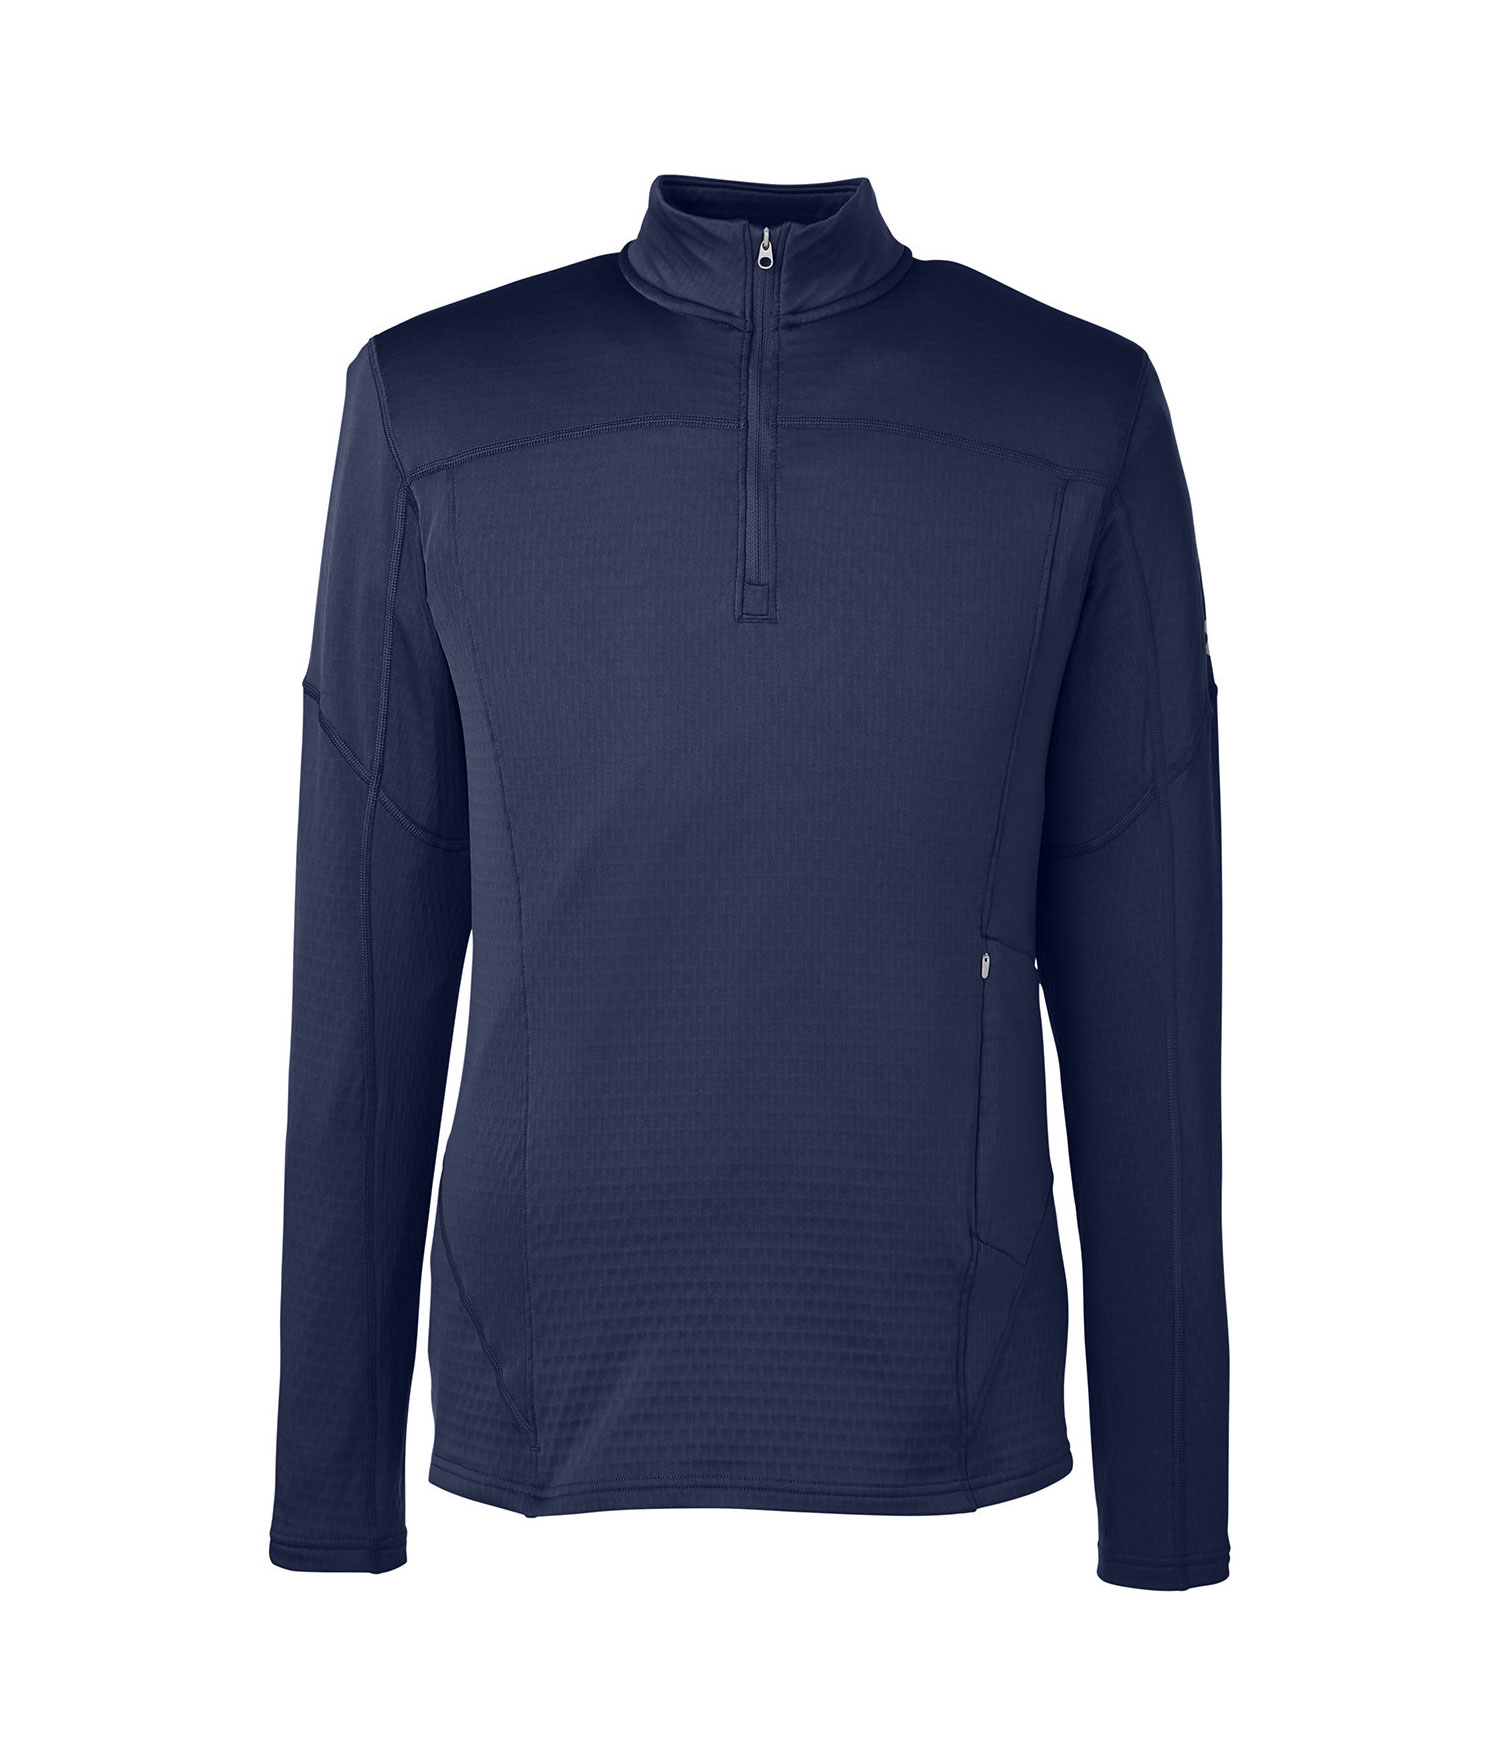 Under Armour Mens Spectra Quarter-Zip